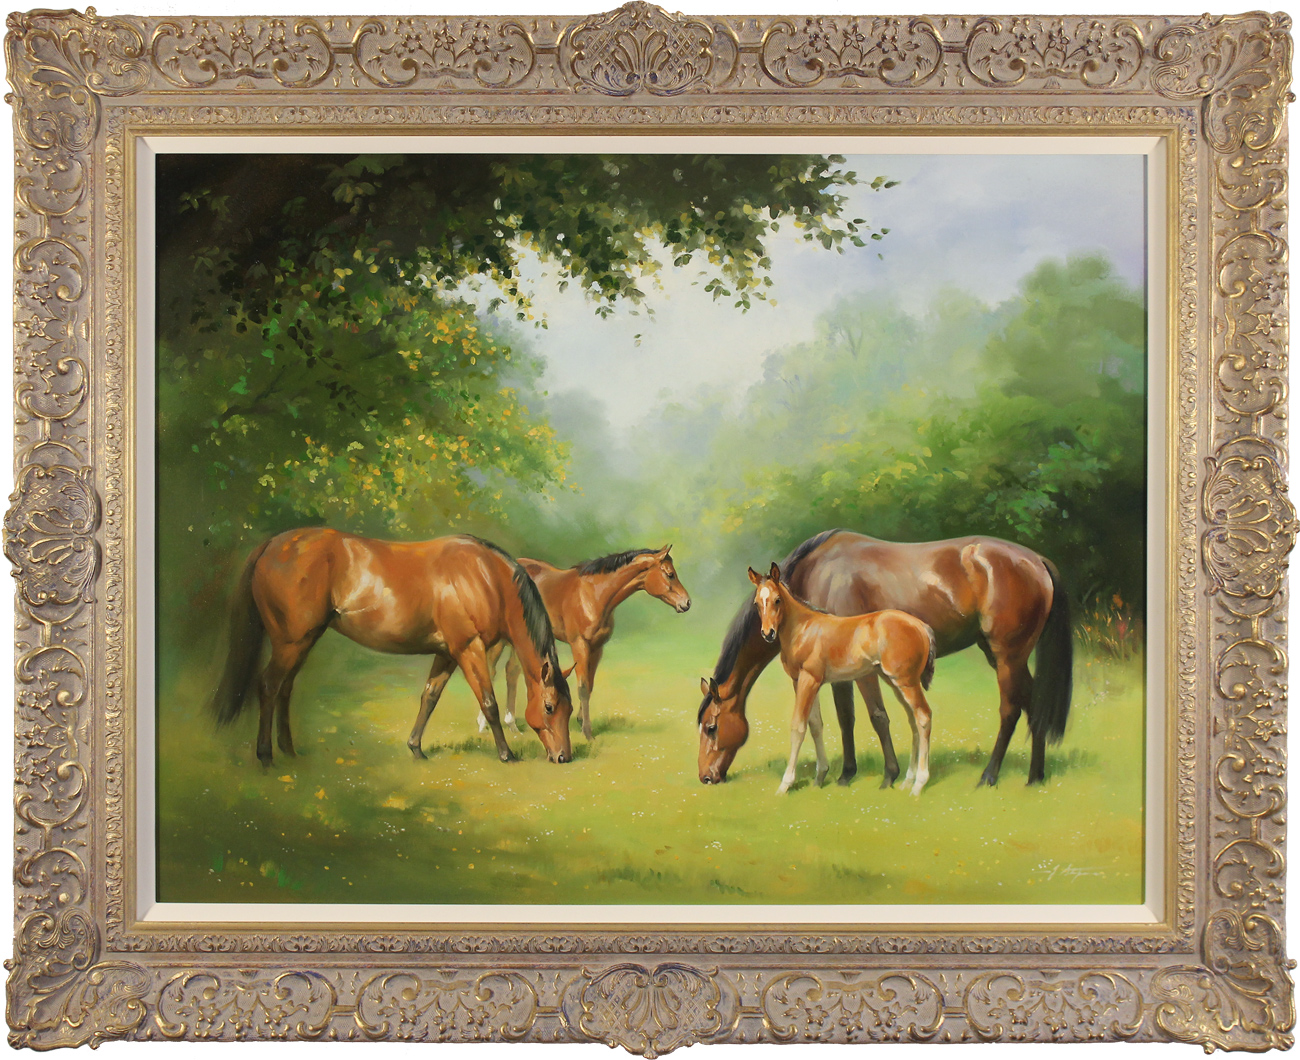 Jacqueline Stanhope, Original oil painting on canvas, Mares and Foals. Click to enlarge